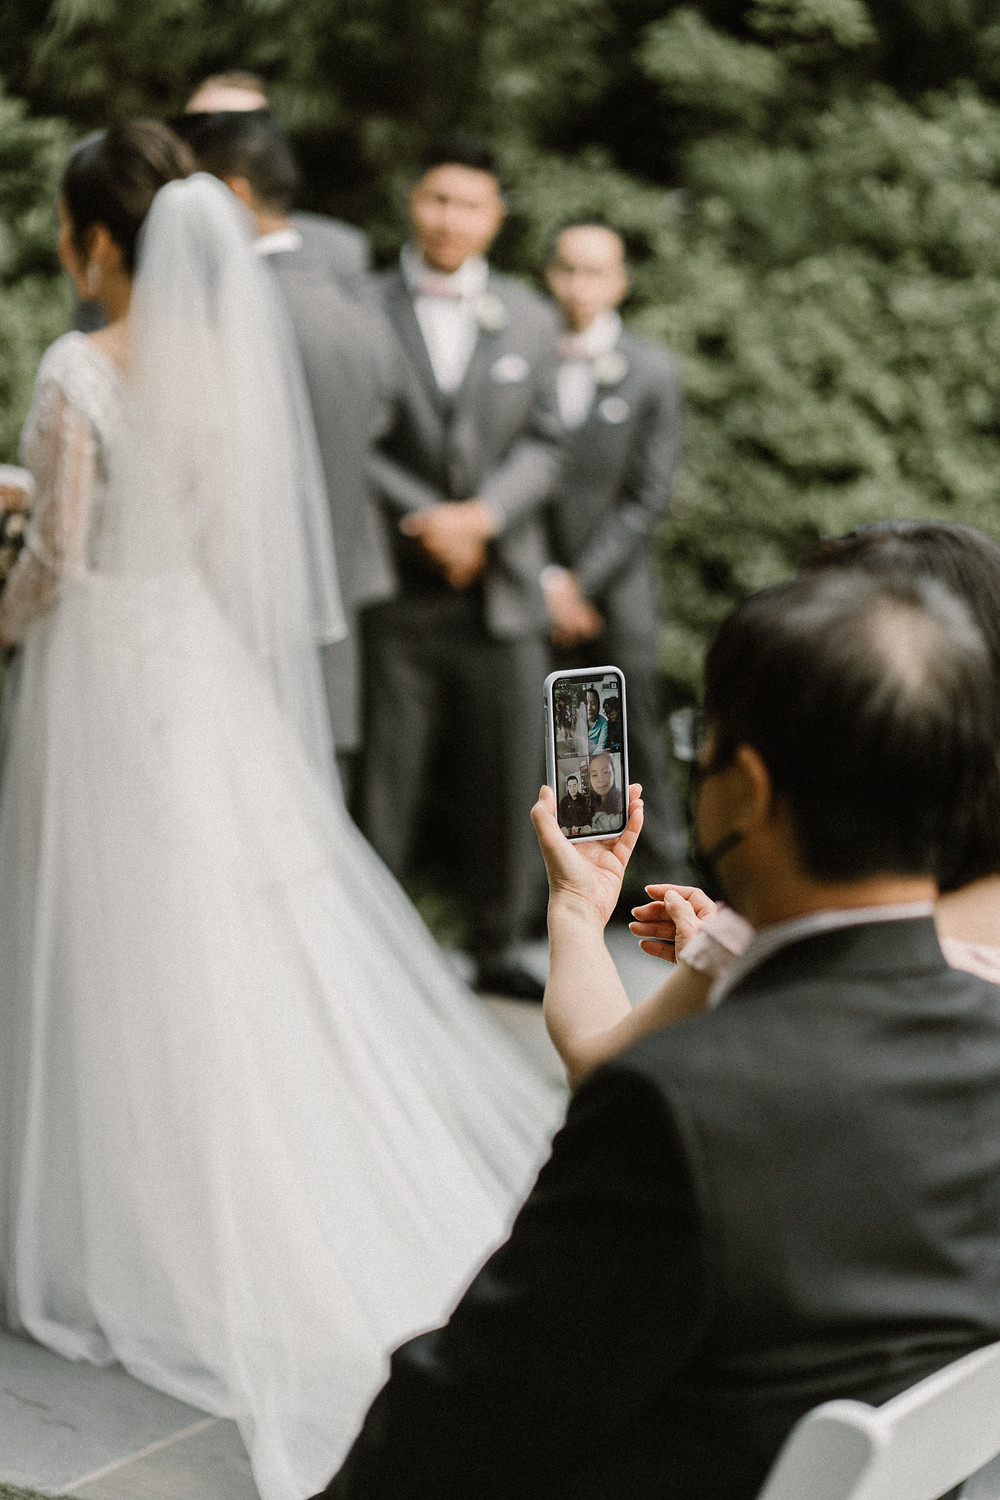 guest filming wedding ceremony with his phone